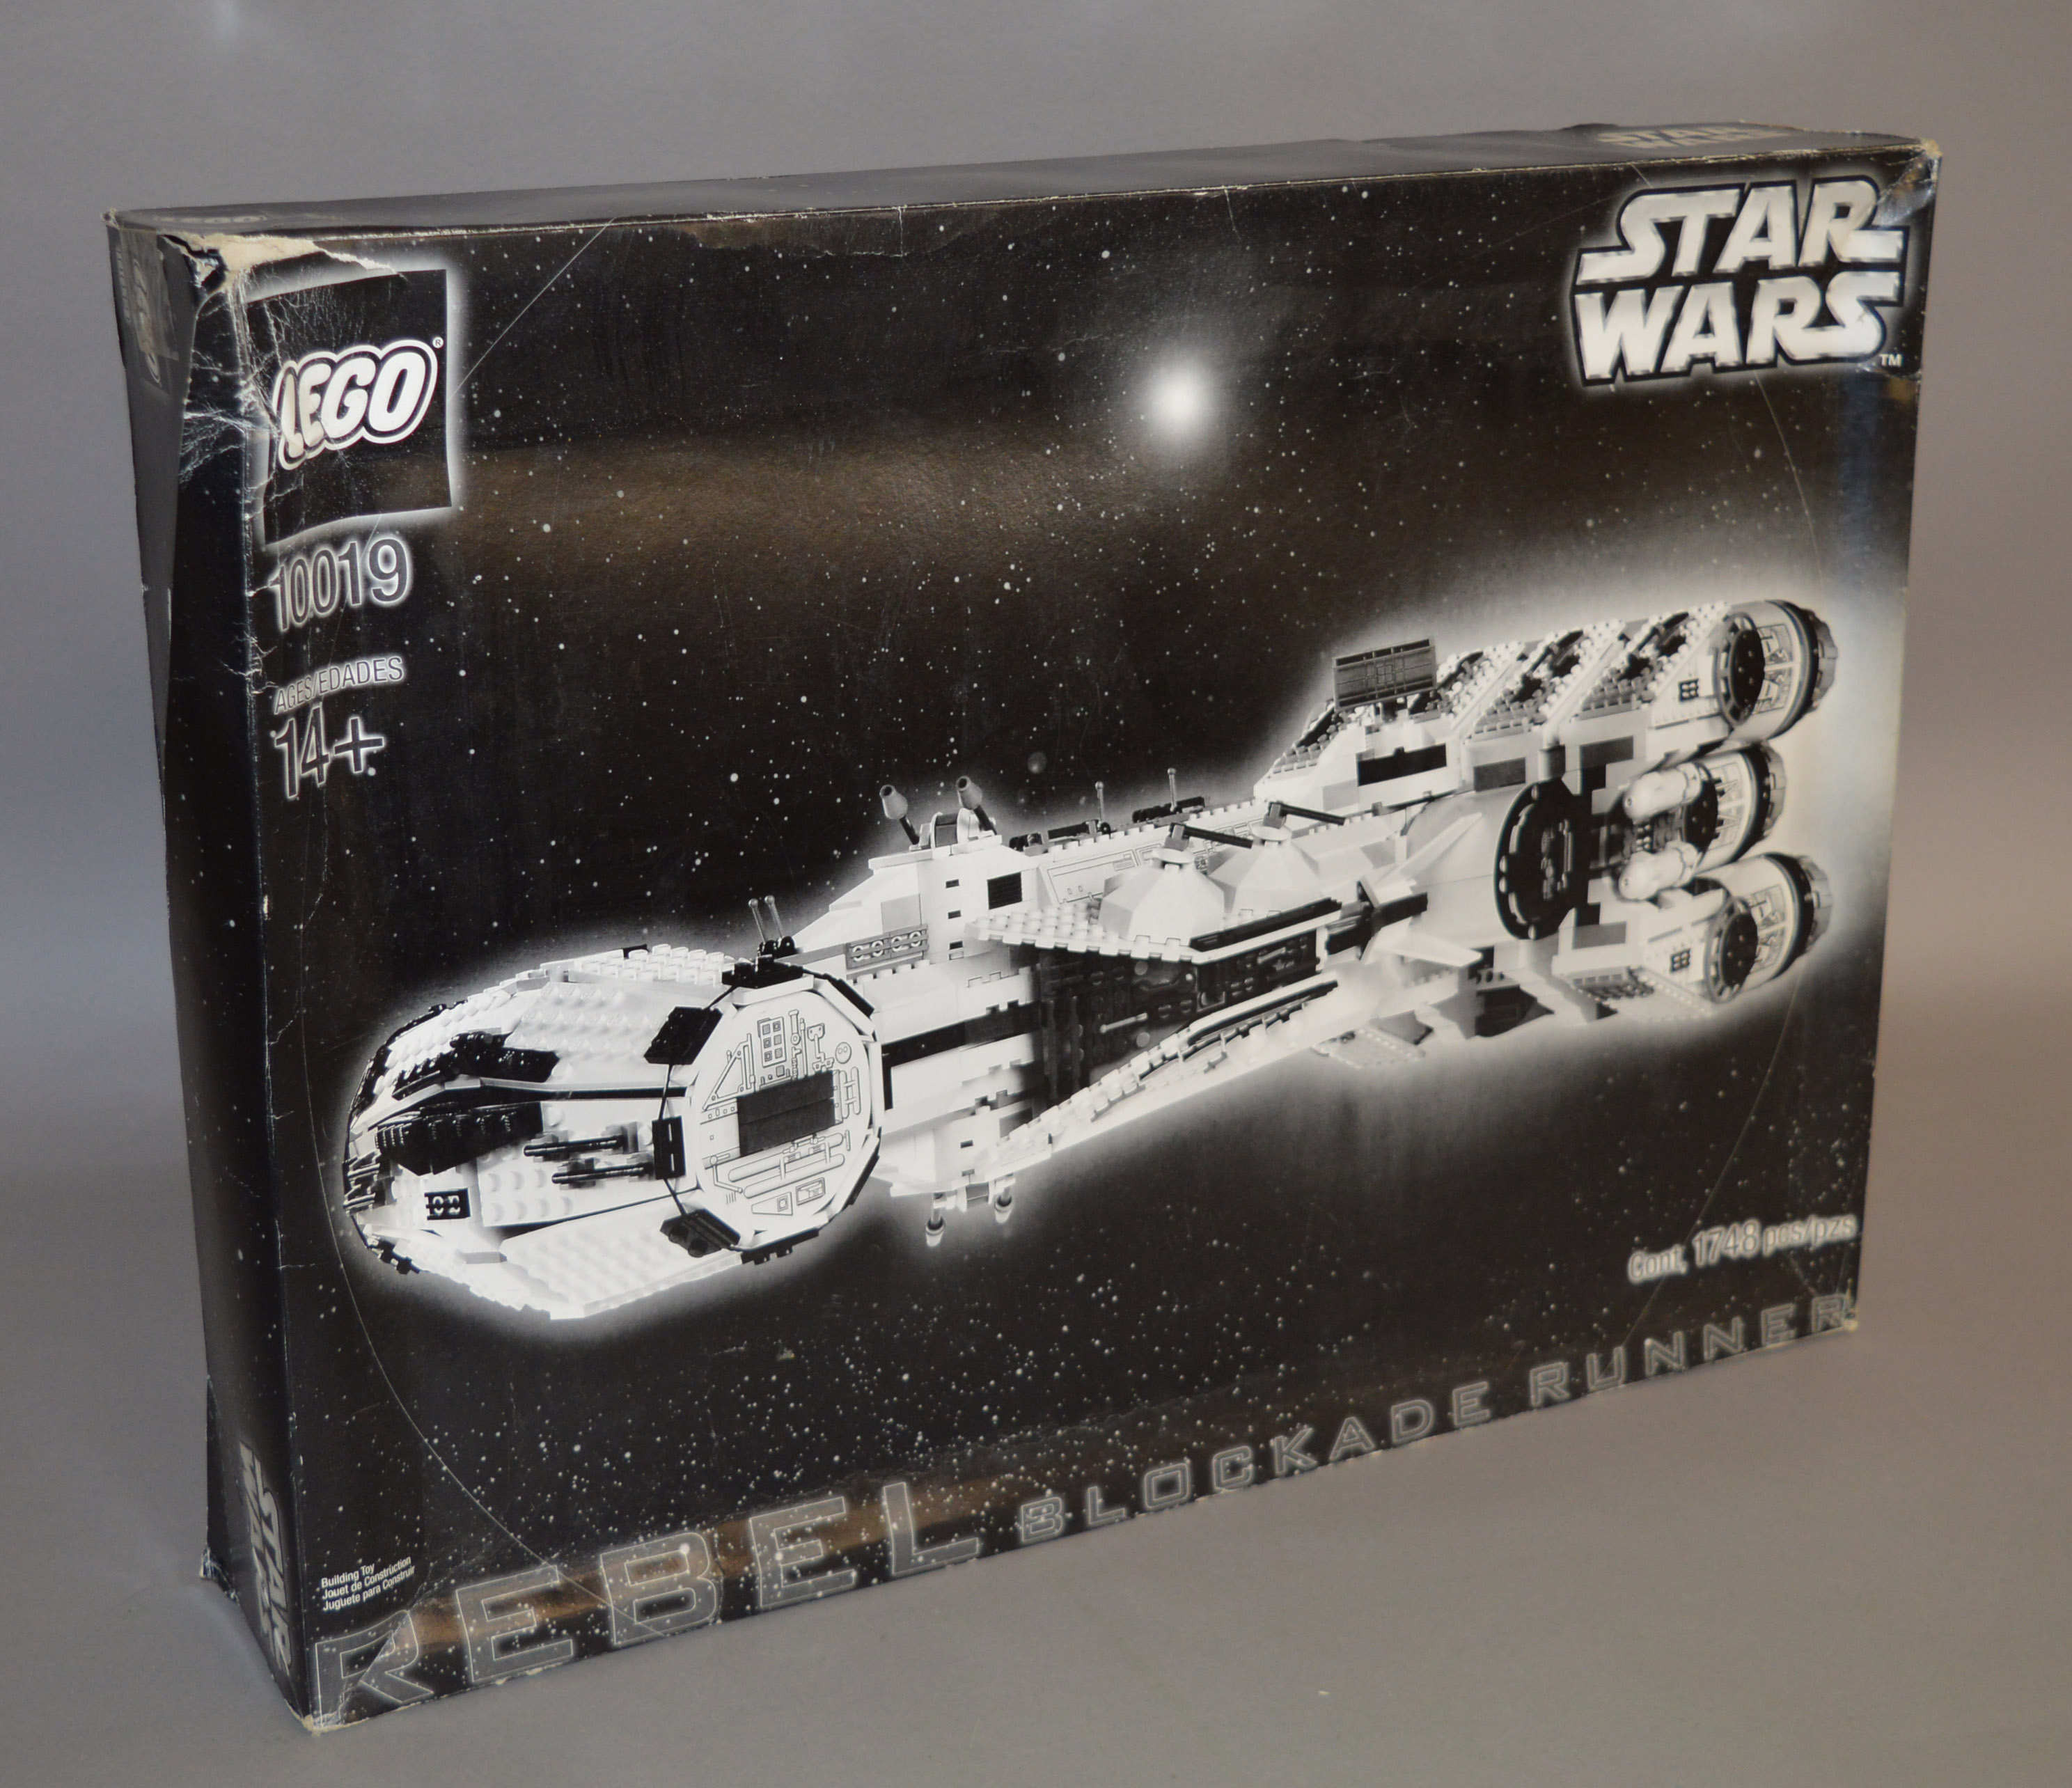 Lot 55 - Lego Star Wars 10019 'Rebel Blockade Runner', in F box with some tears, undulation and creasing.